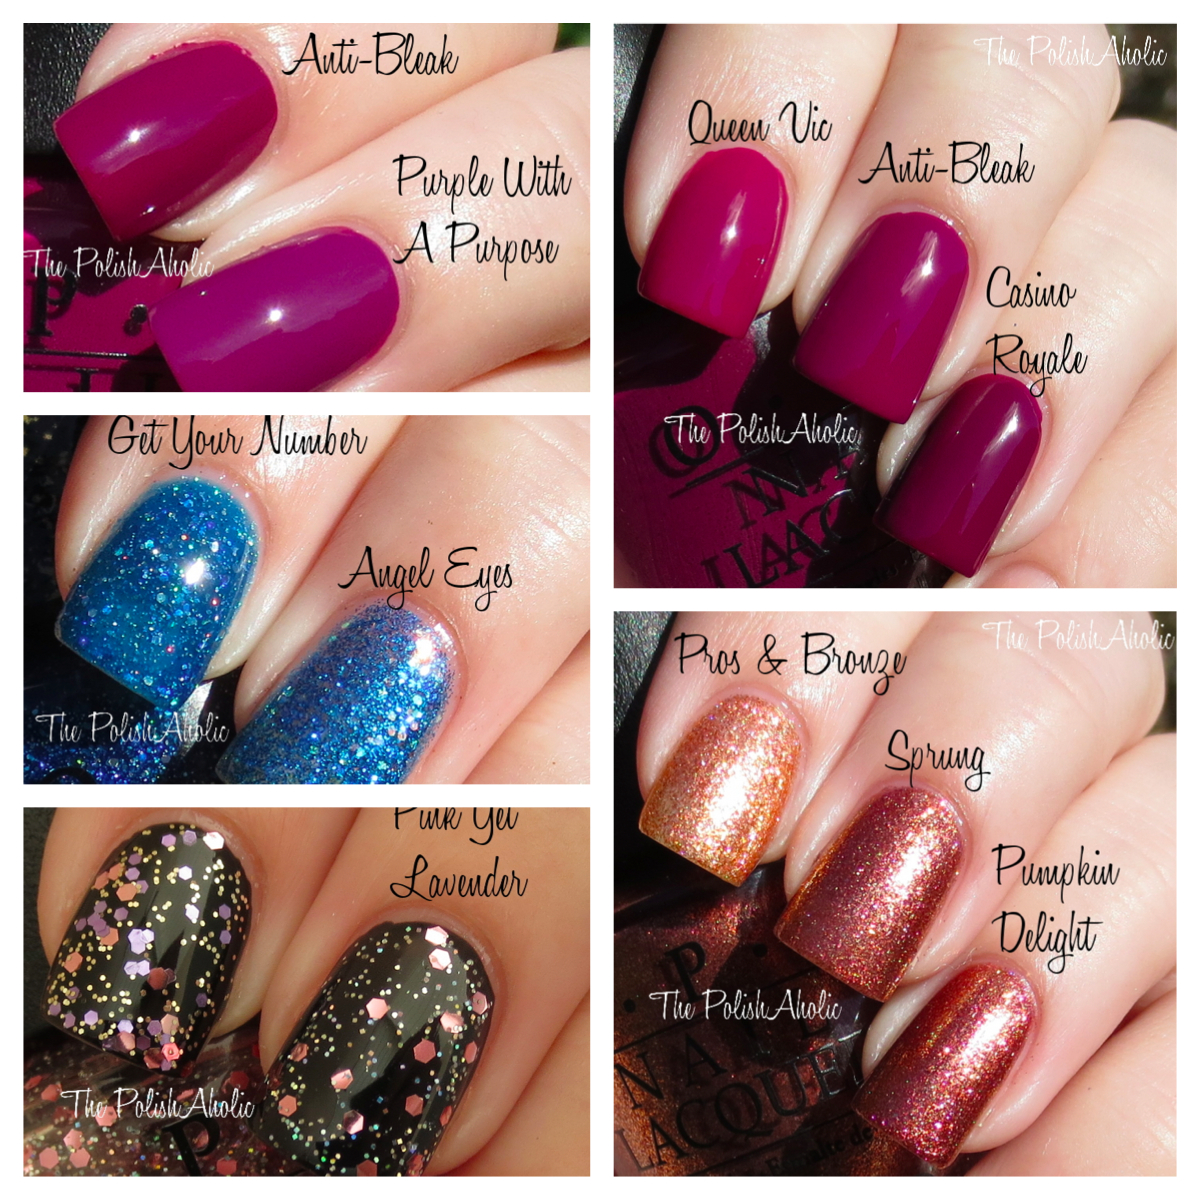 The PolishAholic: OPI Mariah Carey Collection Comparisons